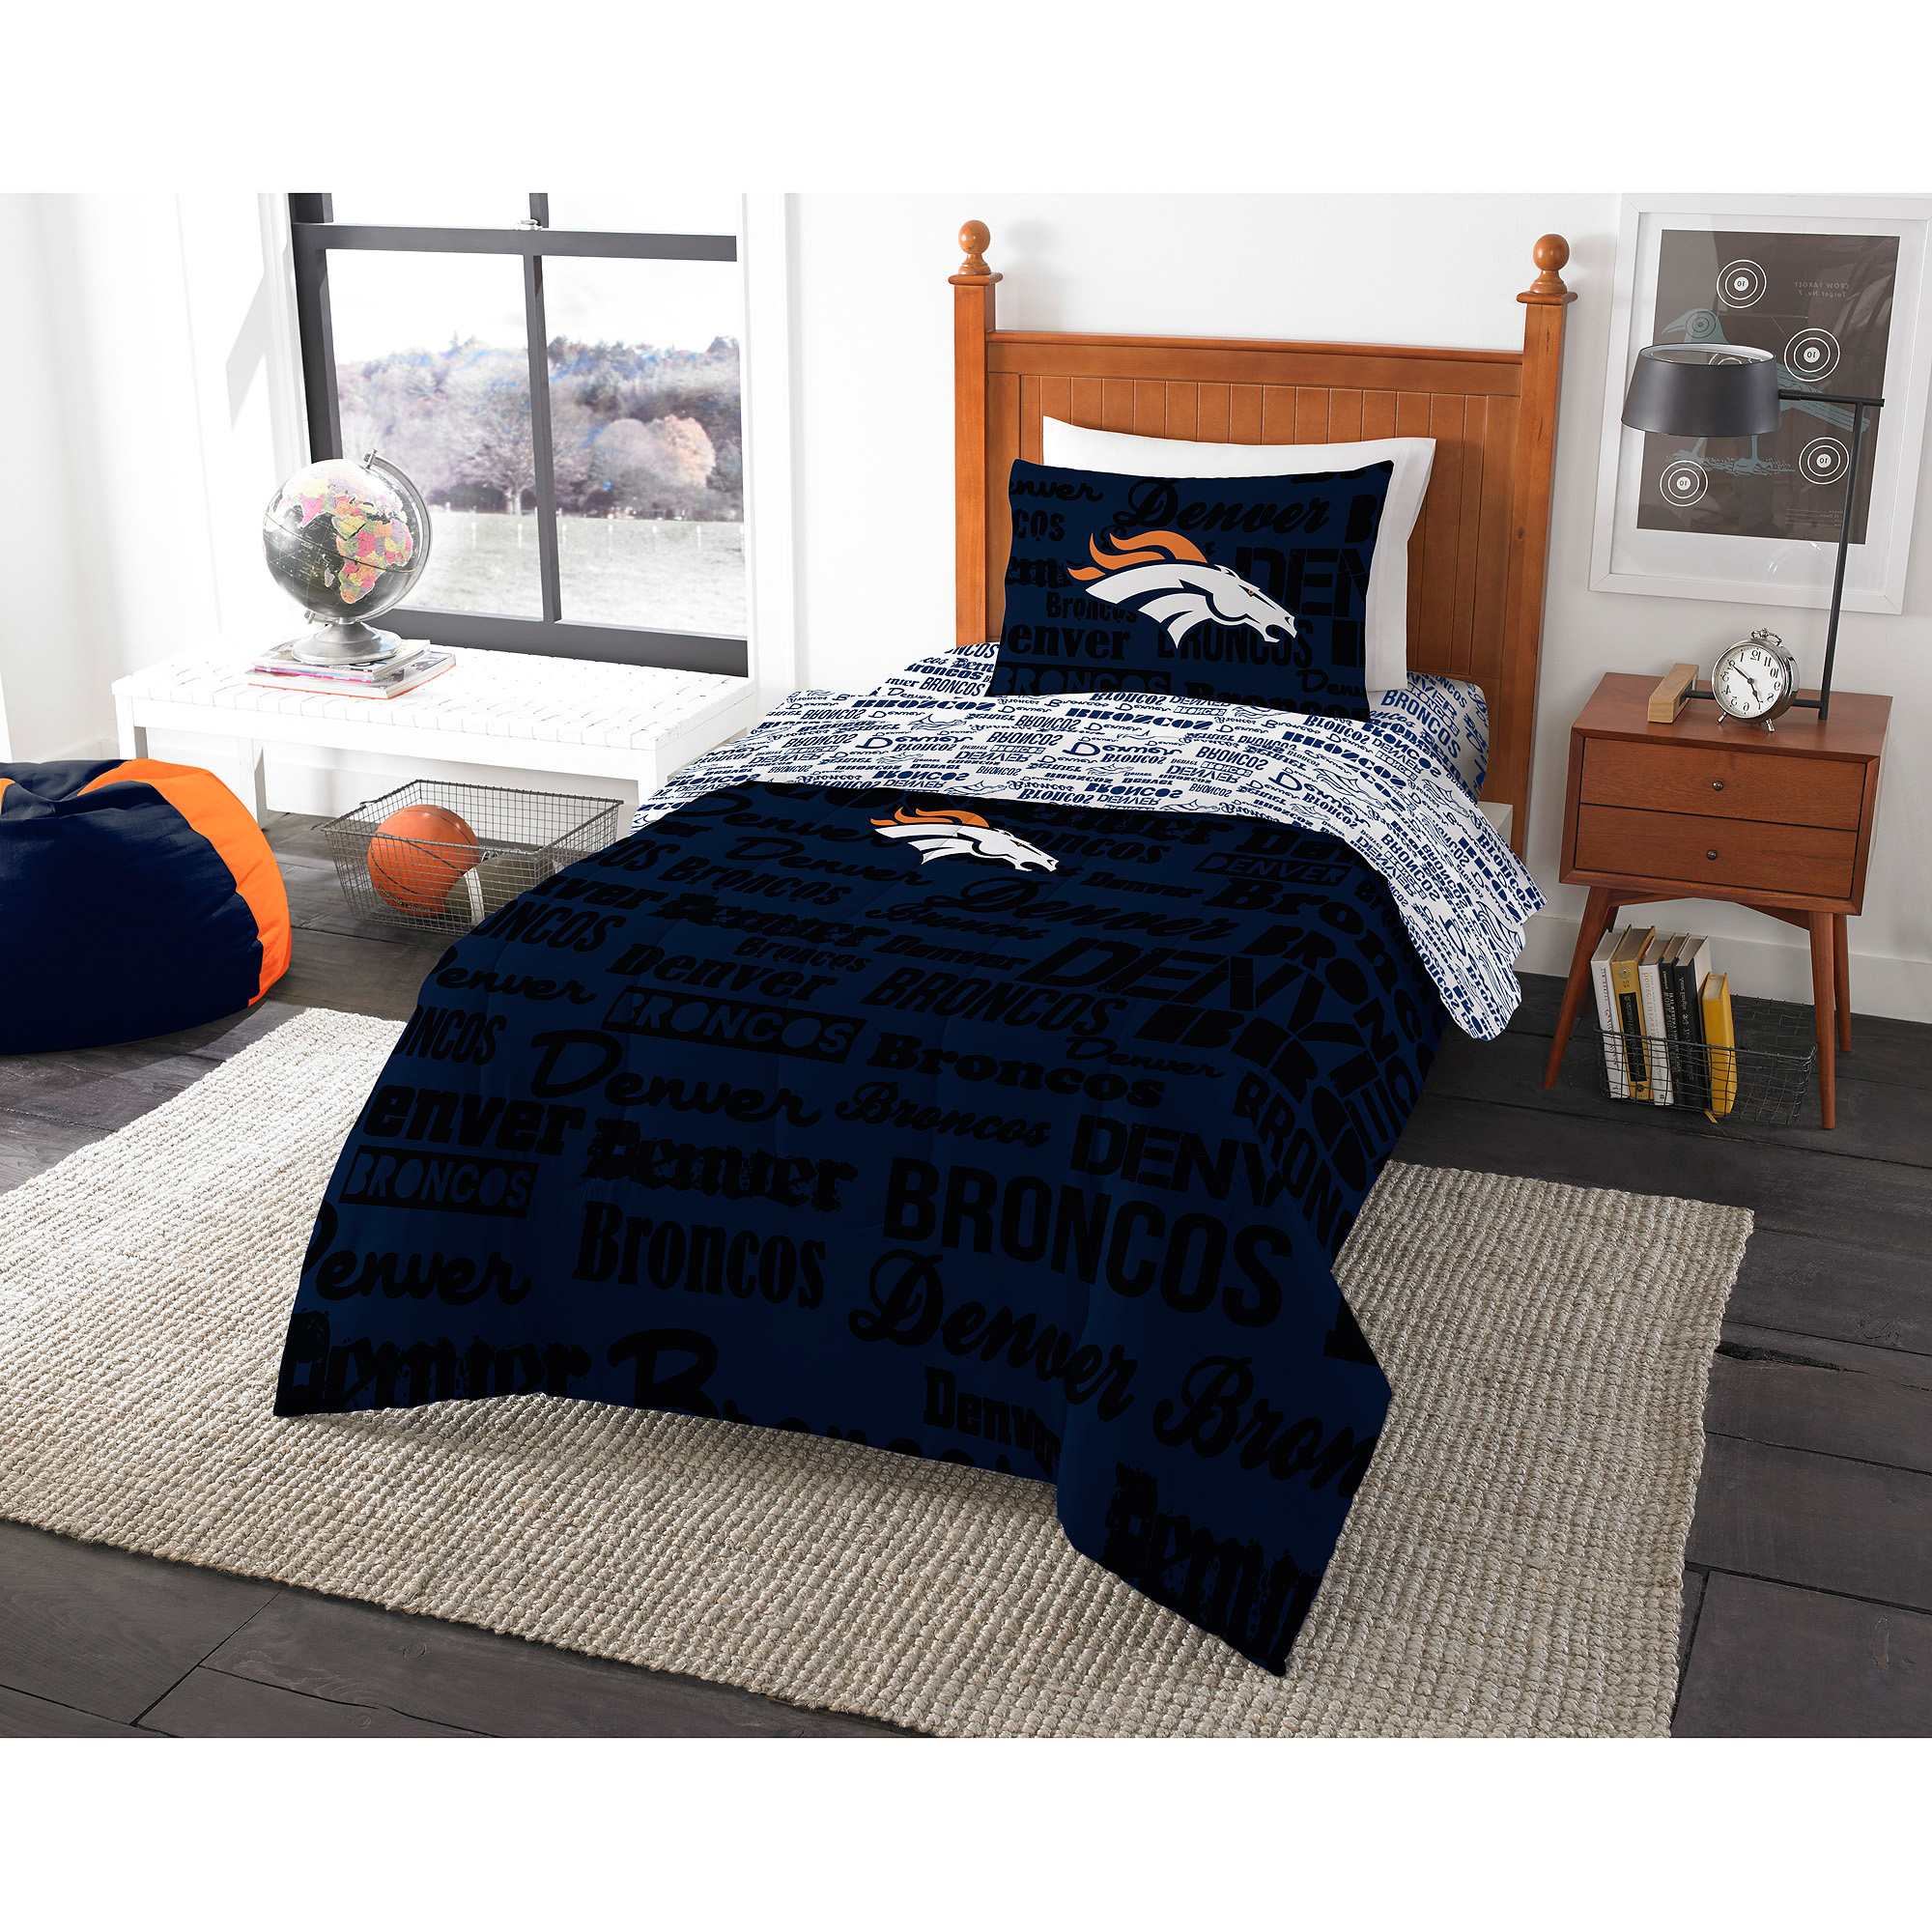 NFL Denver Broncos Bed in a Bag Complete Bedding Set